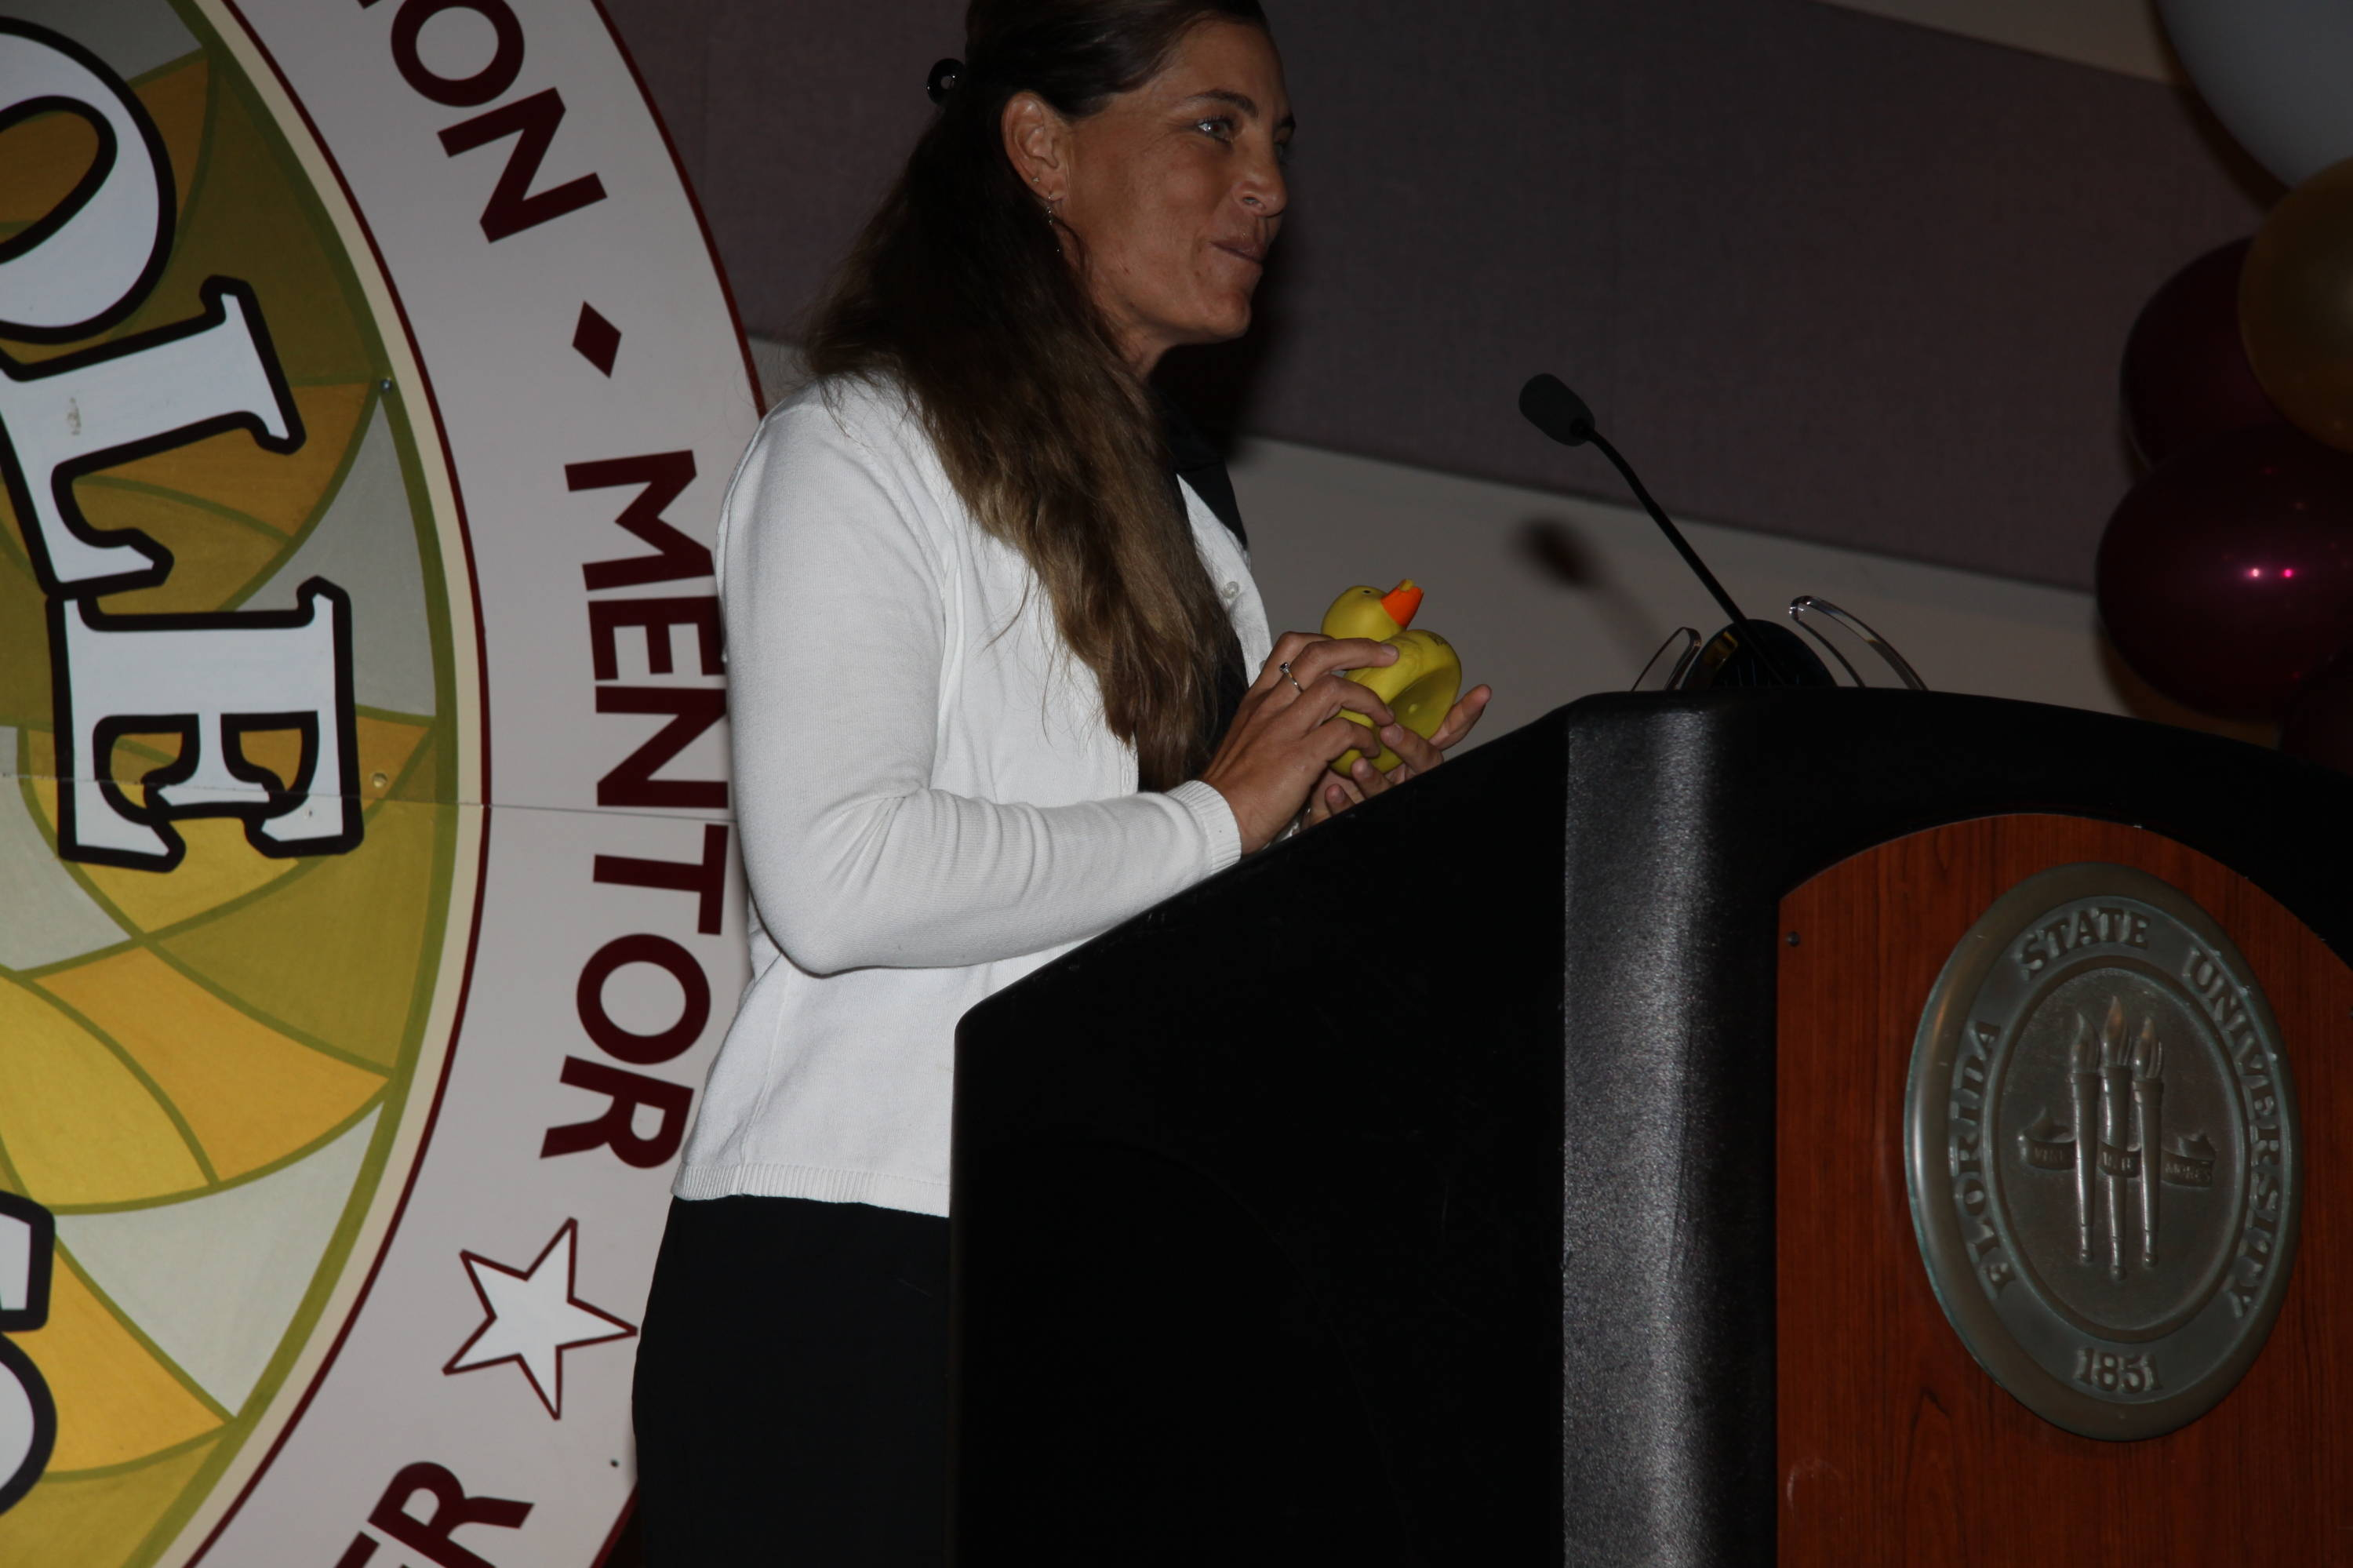 Head coach Lonni Alameda speaks at the podium of the Golden Nole Banquet